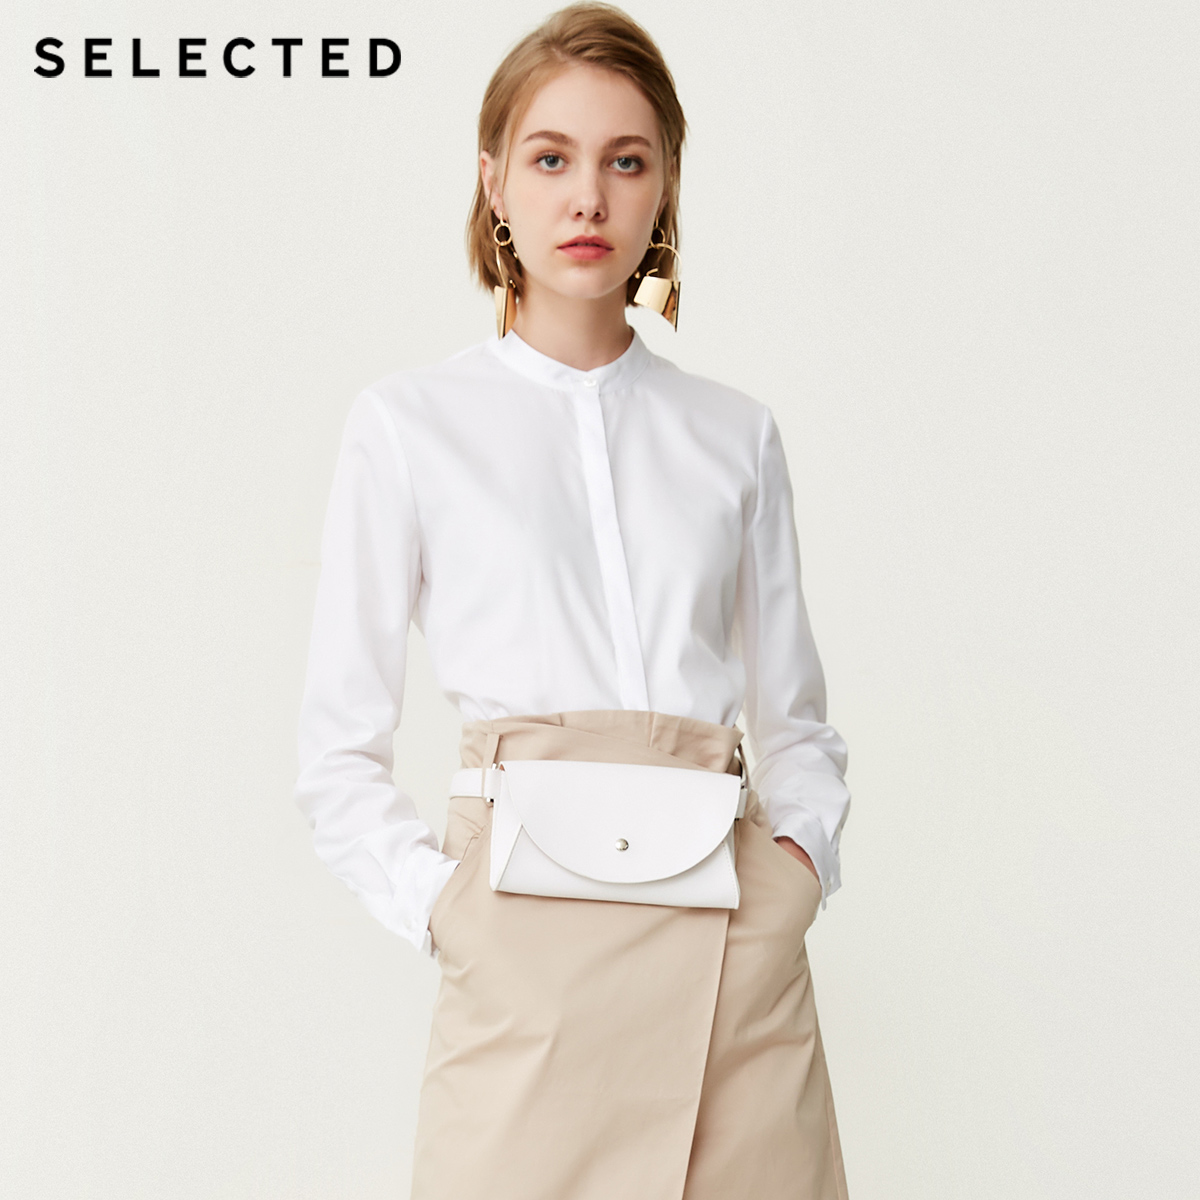 SELECTED Women s 100 Cotton Stand up Collar Shirt SIG 418305518